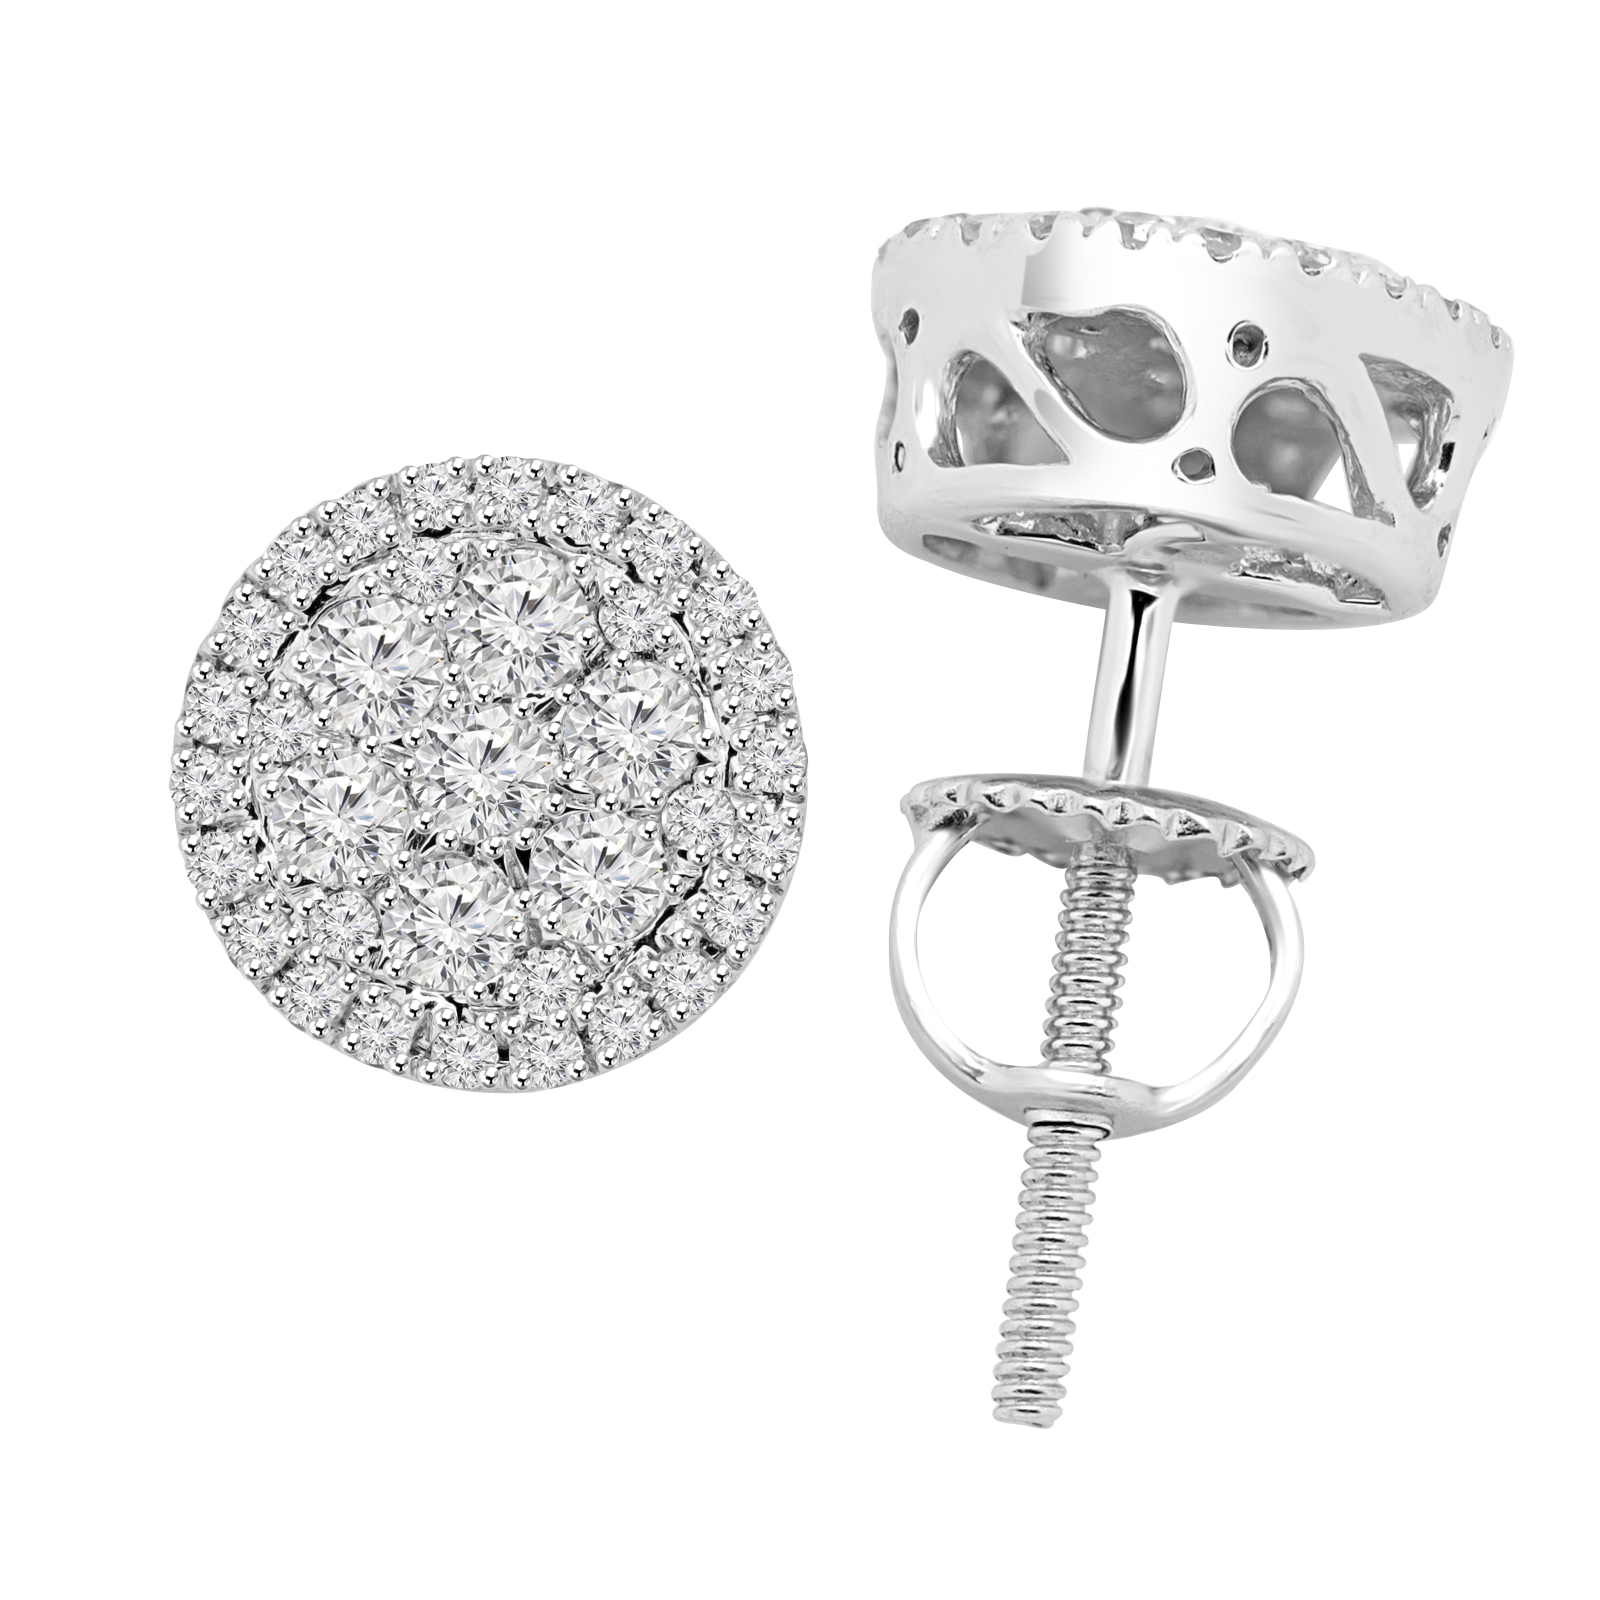 1/2 CTW Round Diamond Halo Stud Earrings in 14K White Gold (MDR140144) - image 1 de 2